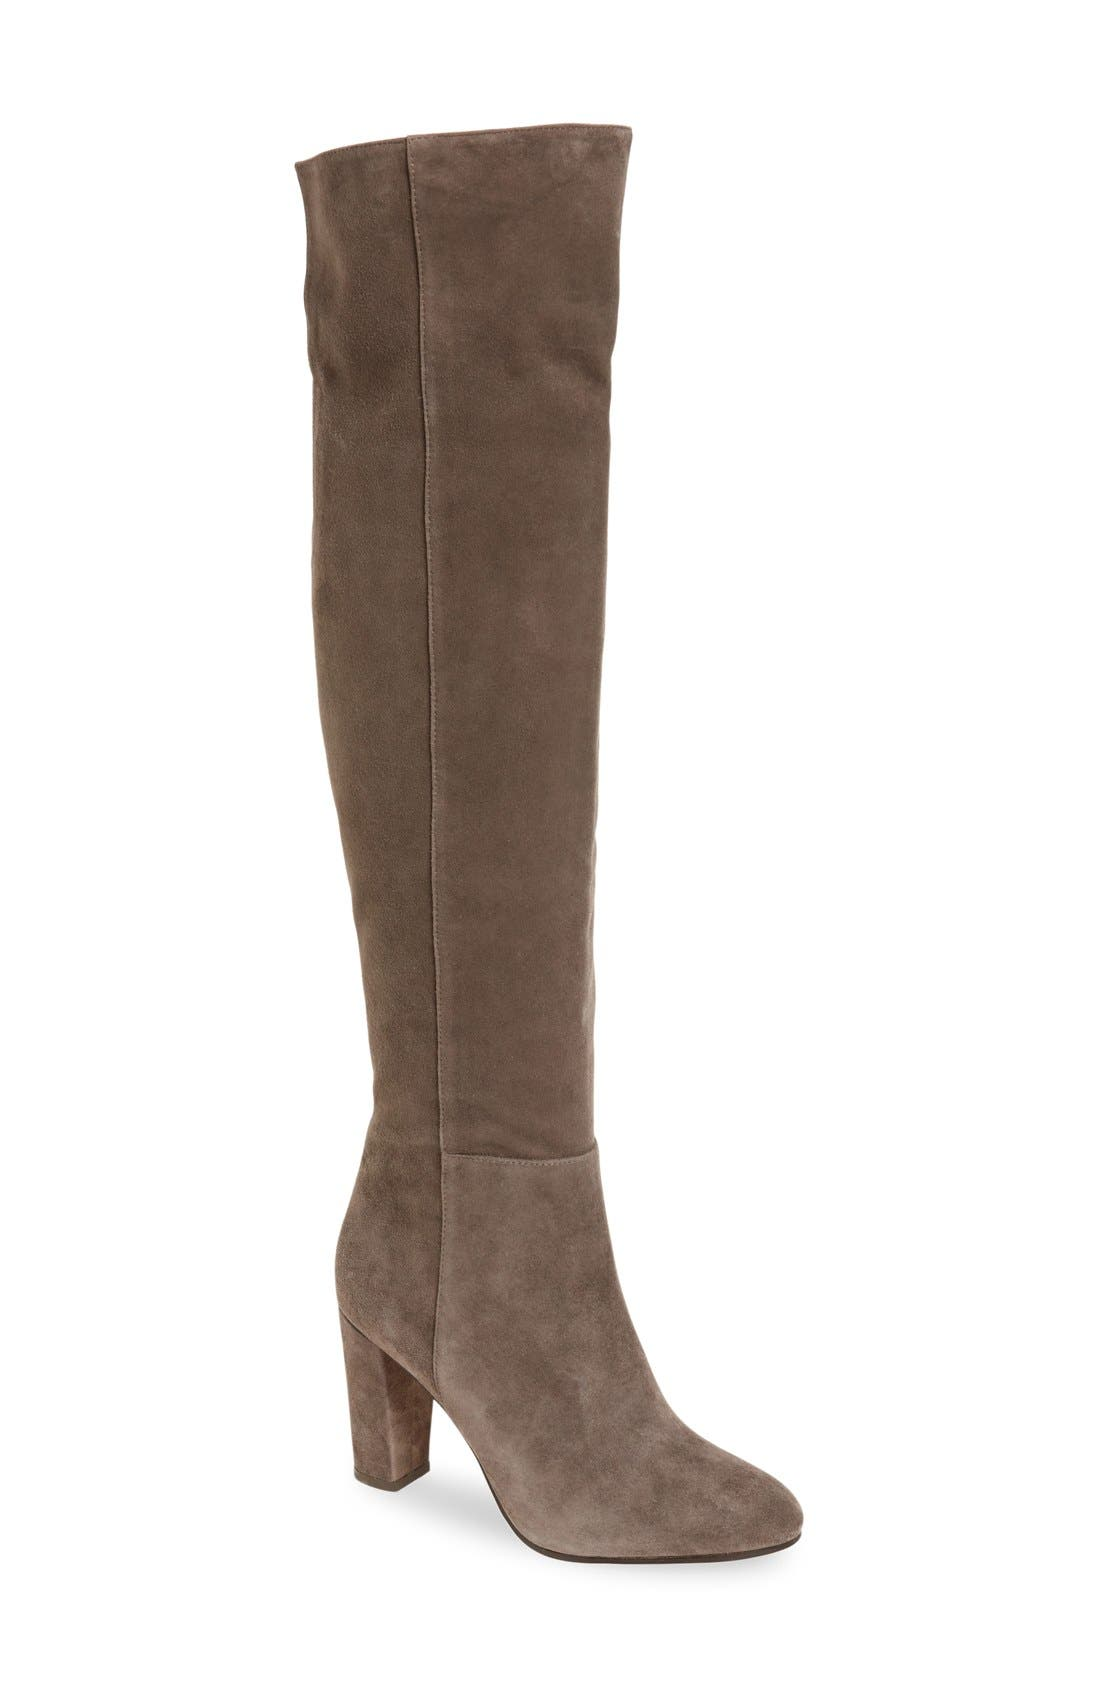 Alternate Image 1 Selected - Halogen® 'Noble' Over the Knee Boot (Women)